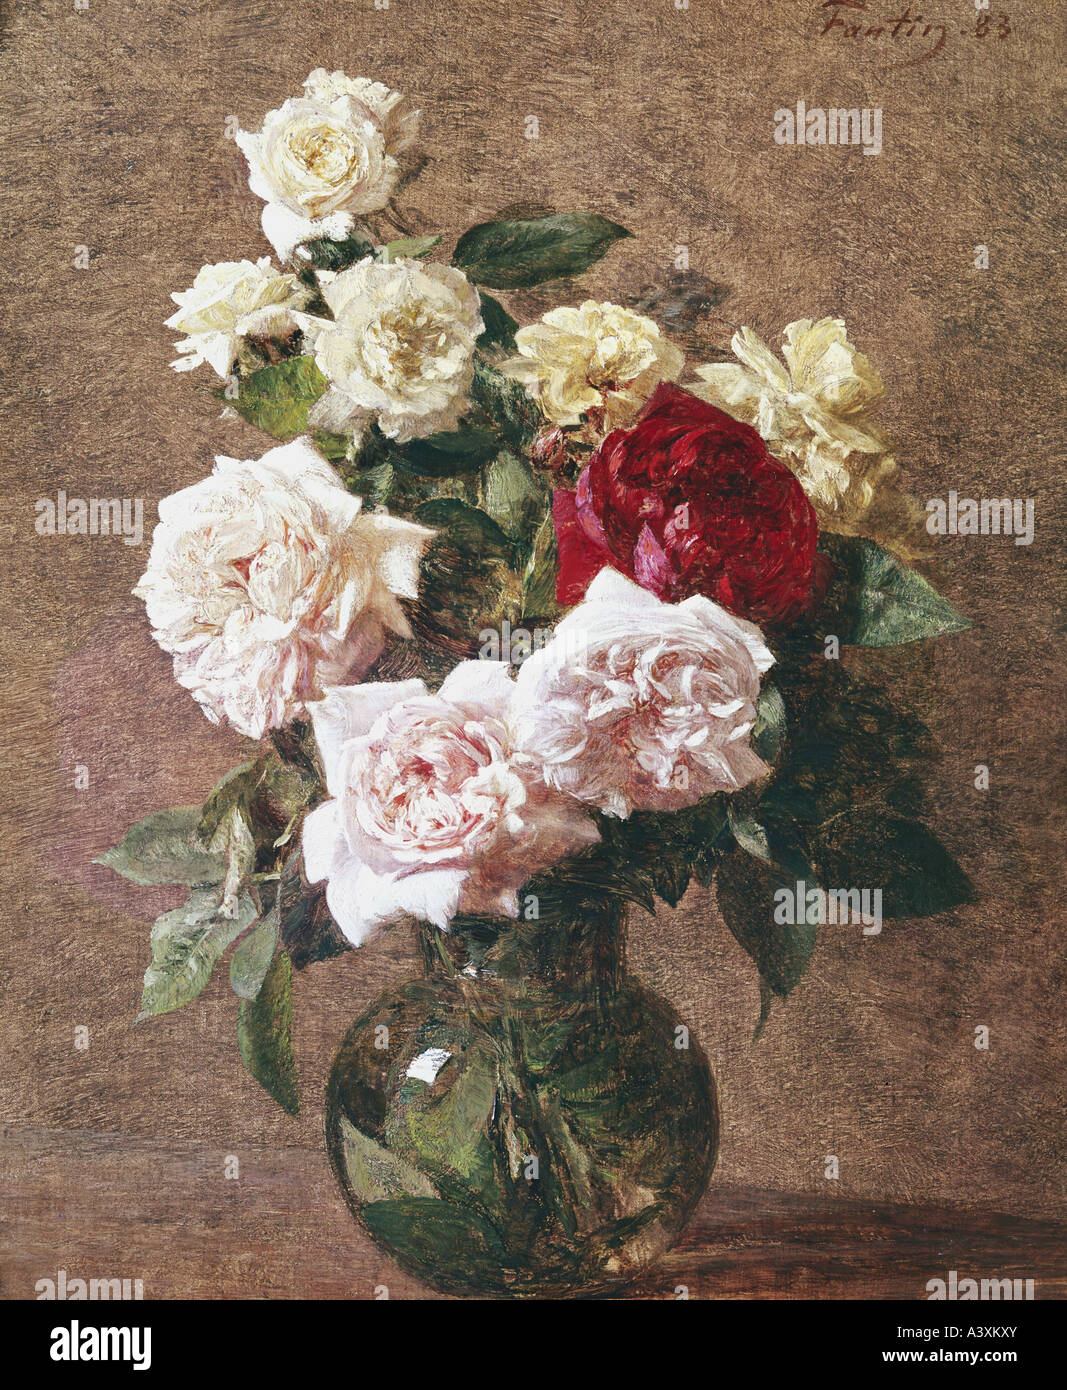 'fine arts, Fantin-Latour, Henri, (1836 - 1904), painting, 'flowers in vase', 1883, Gulbenkian Collection, - Stock Image